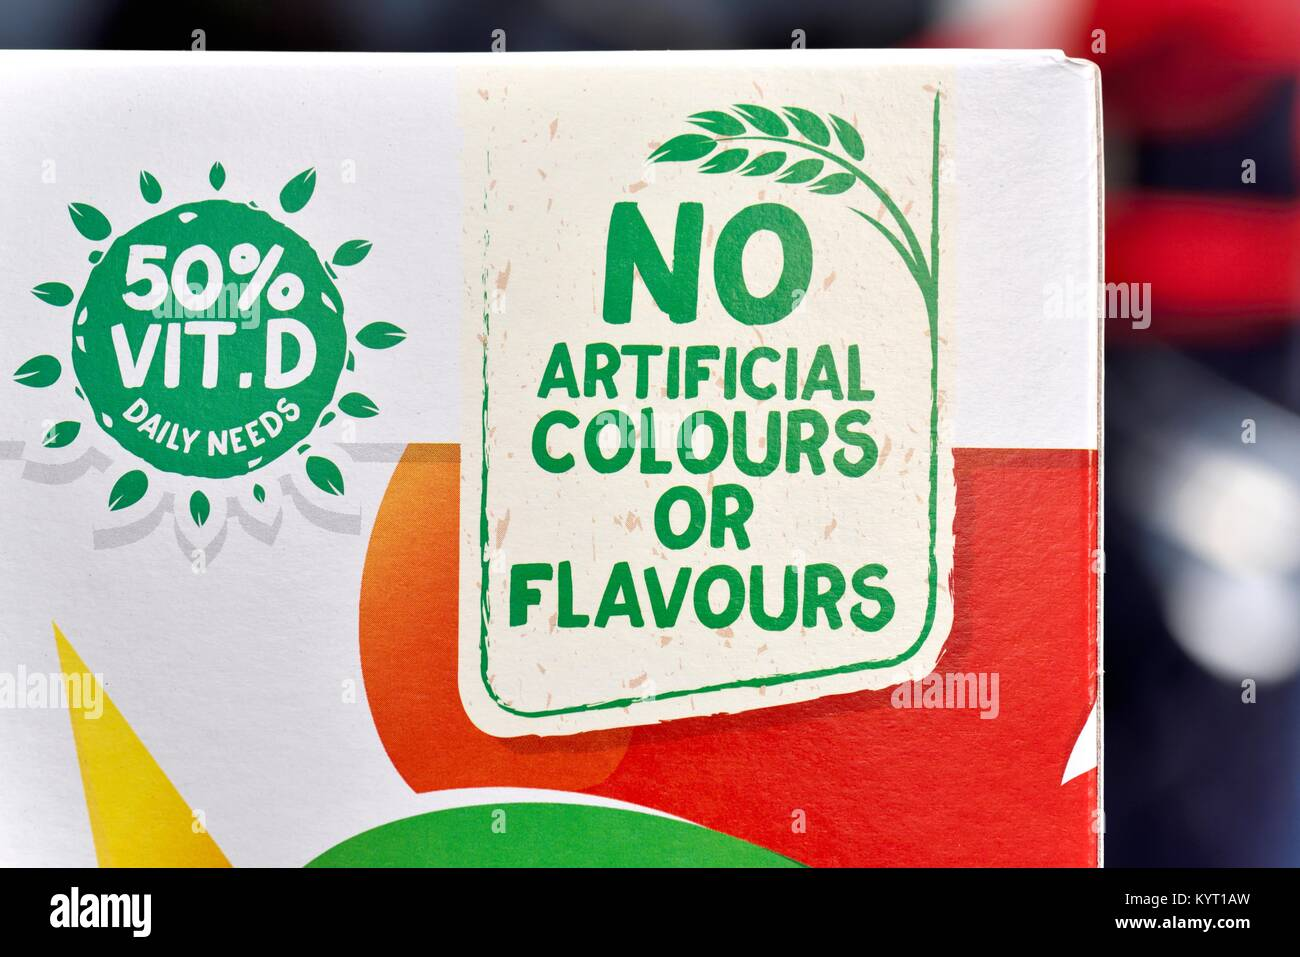 No artificial colours or flavours marketing slogan on a pack of kellogs cornflakes - Stock Image